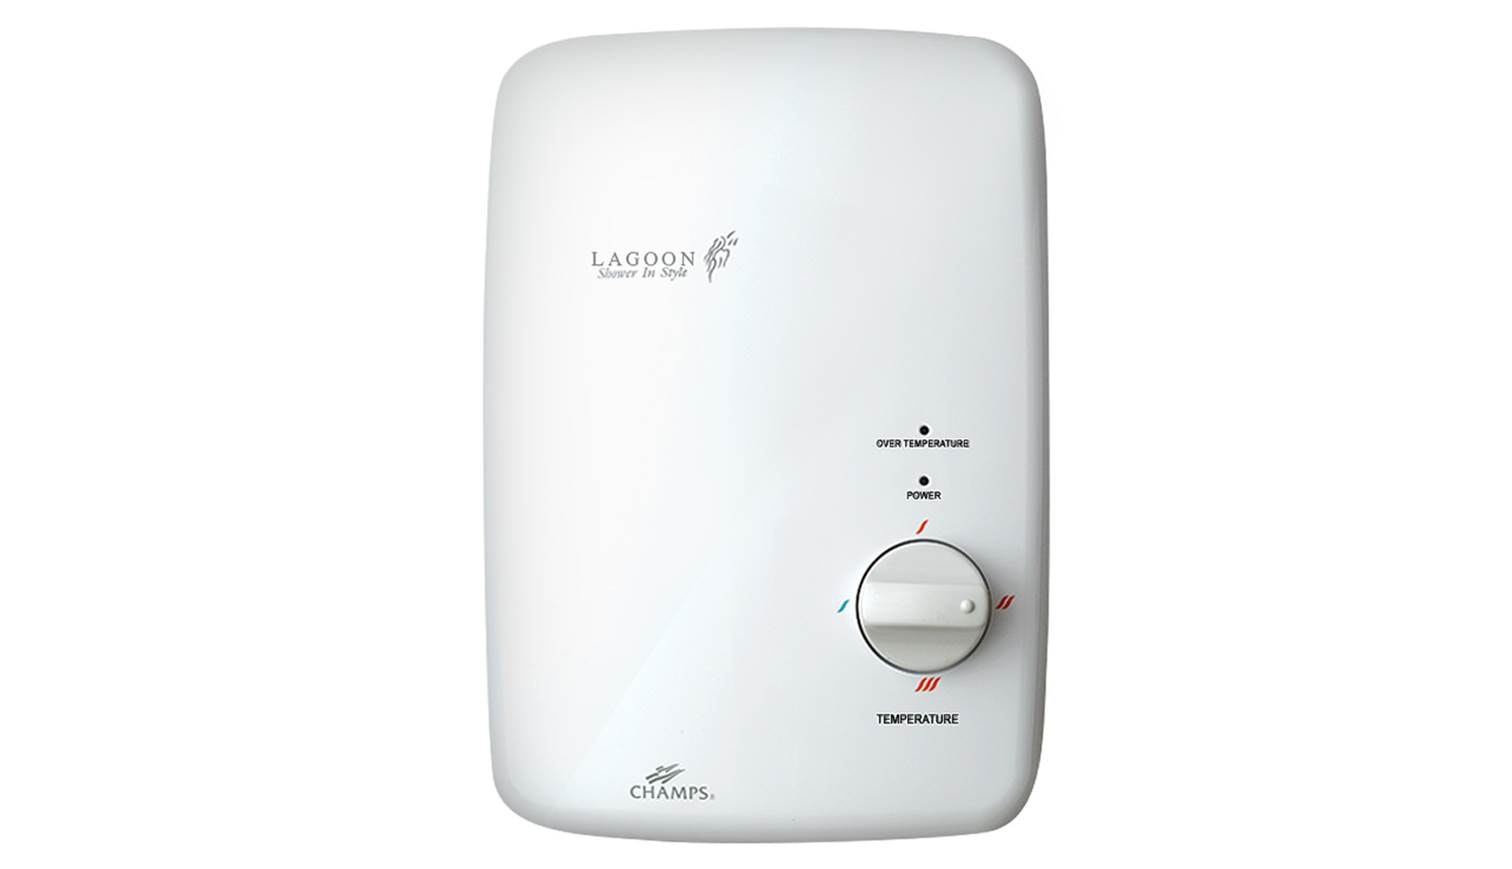 Champs Lagoon Instant Water Heater Harvey Norman Singapore